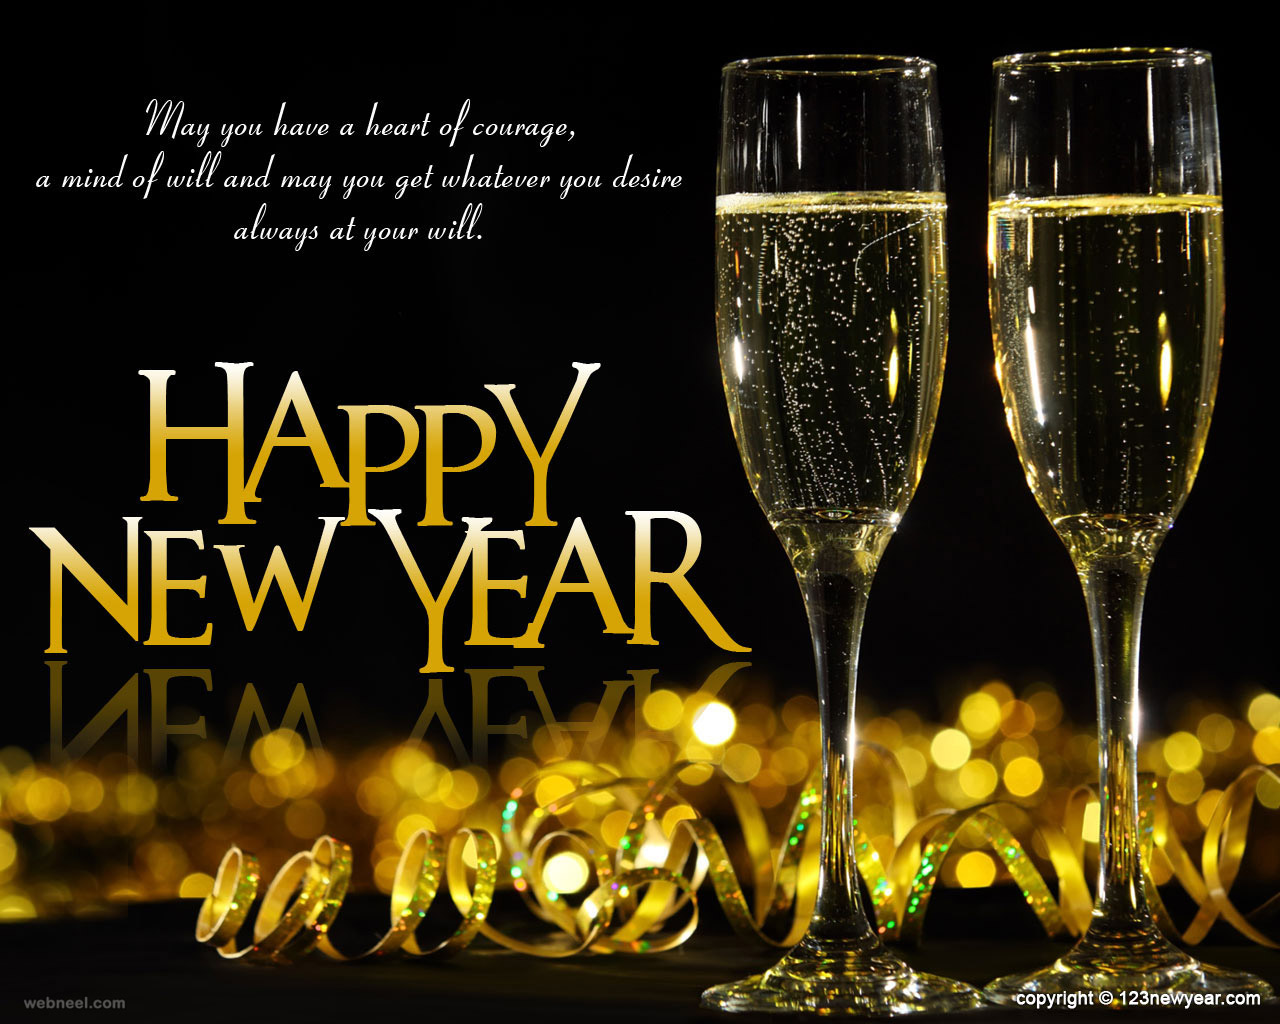 Happy new year wallpaper 18 full image happy new year wallpaper kristyandbryce Choice Image